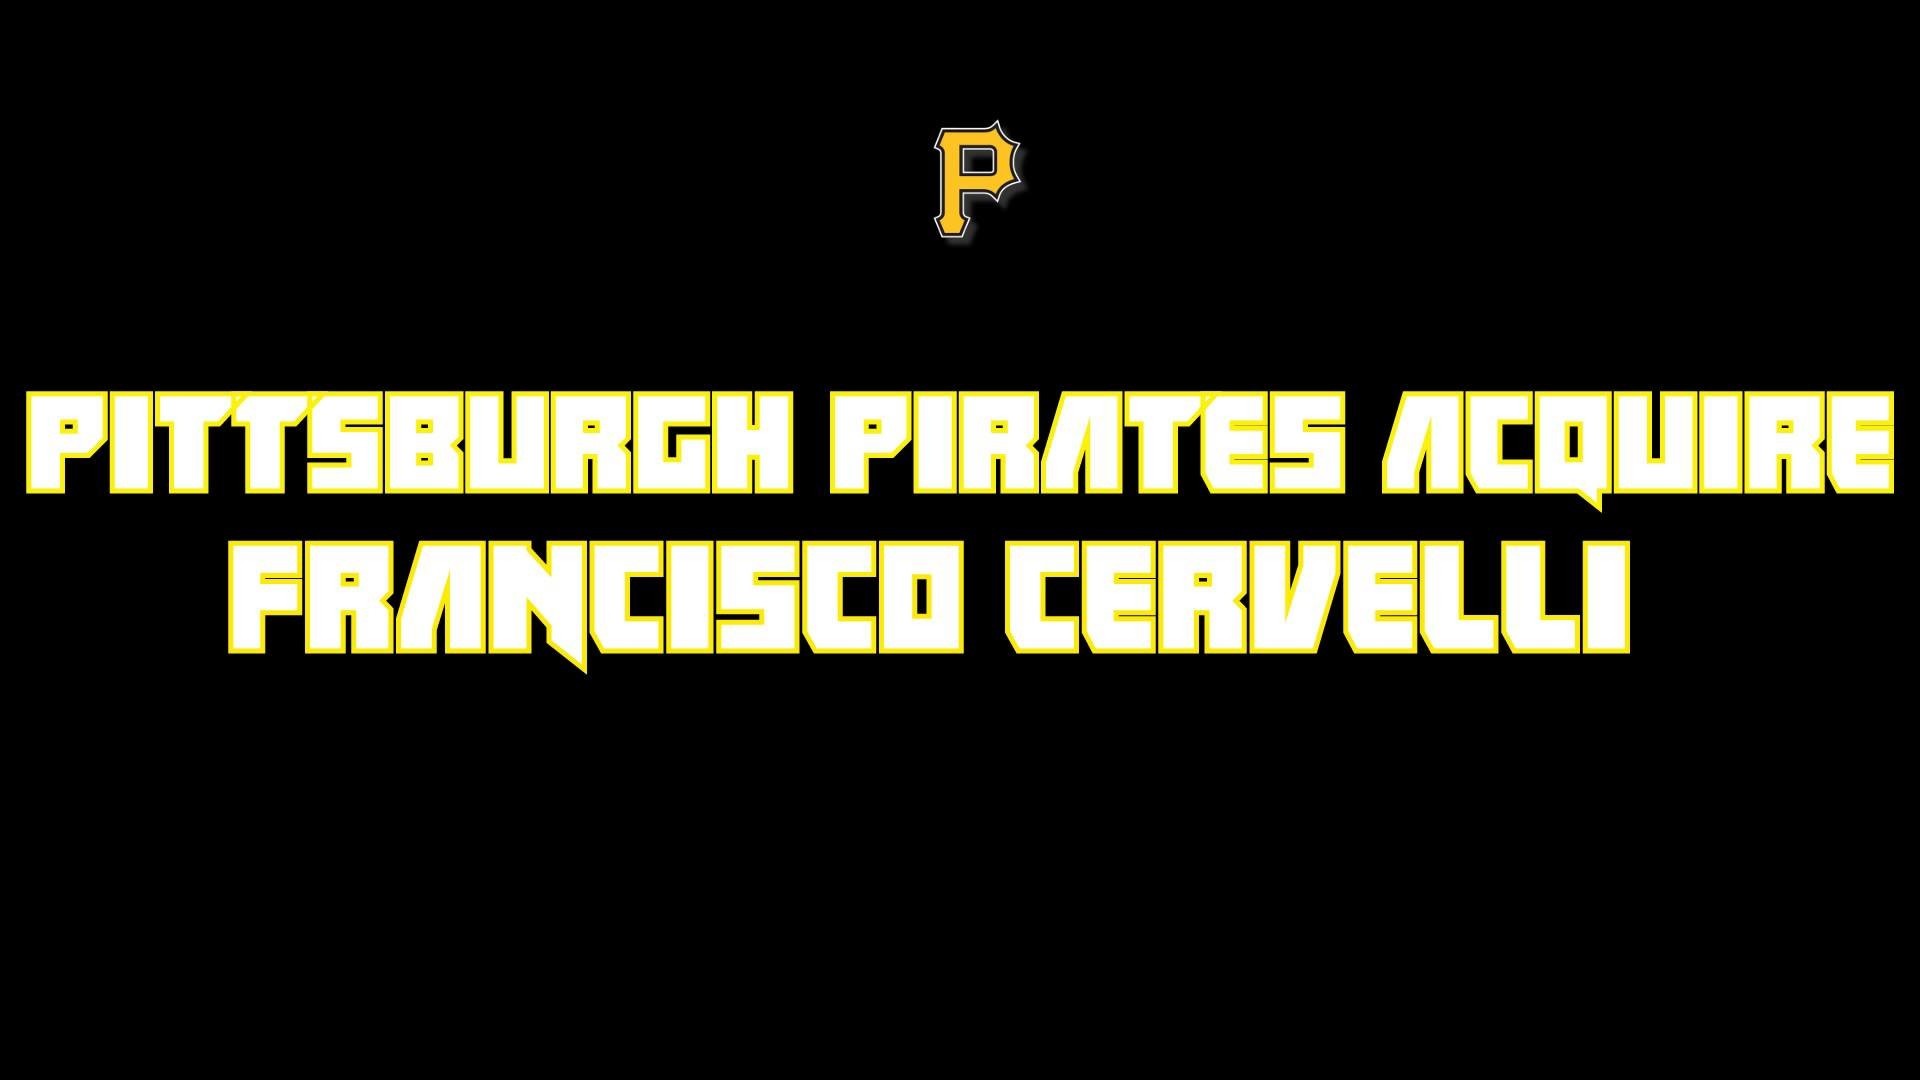 Pittsburgh Pirates Acquired Francisco Cervelli For Justin Wilson